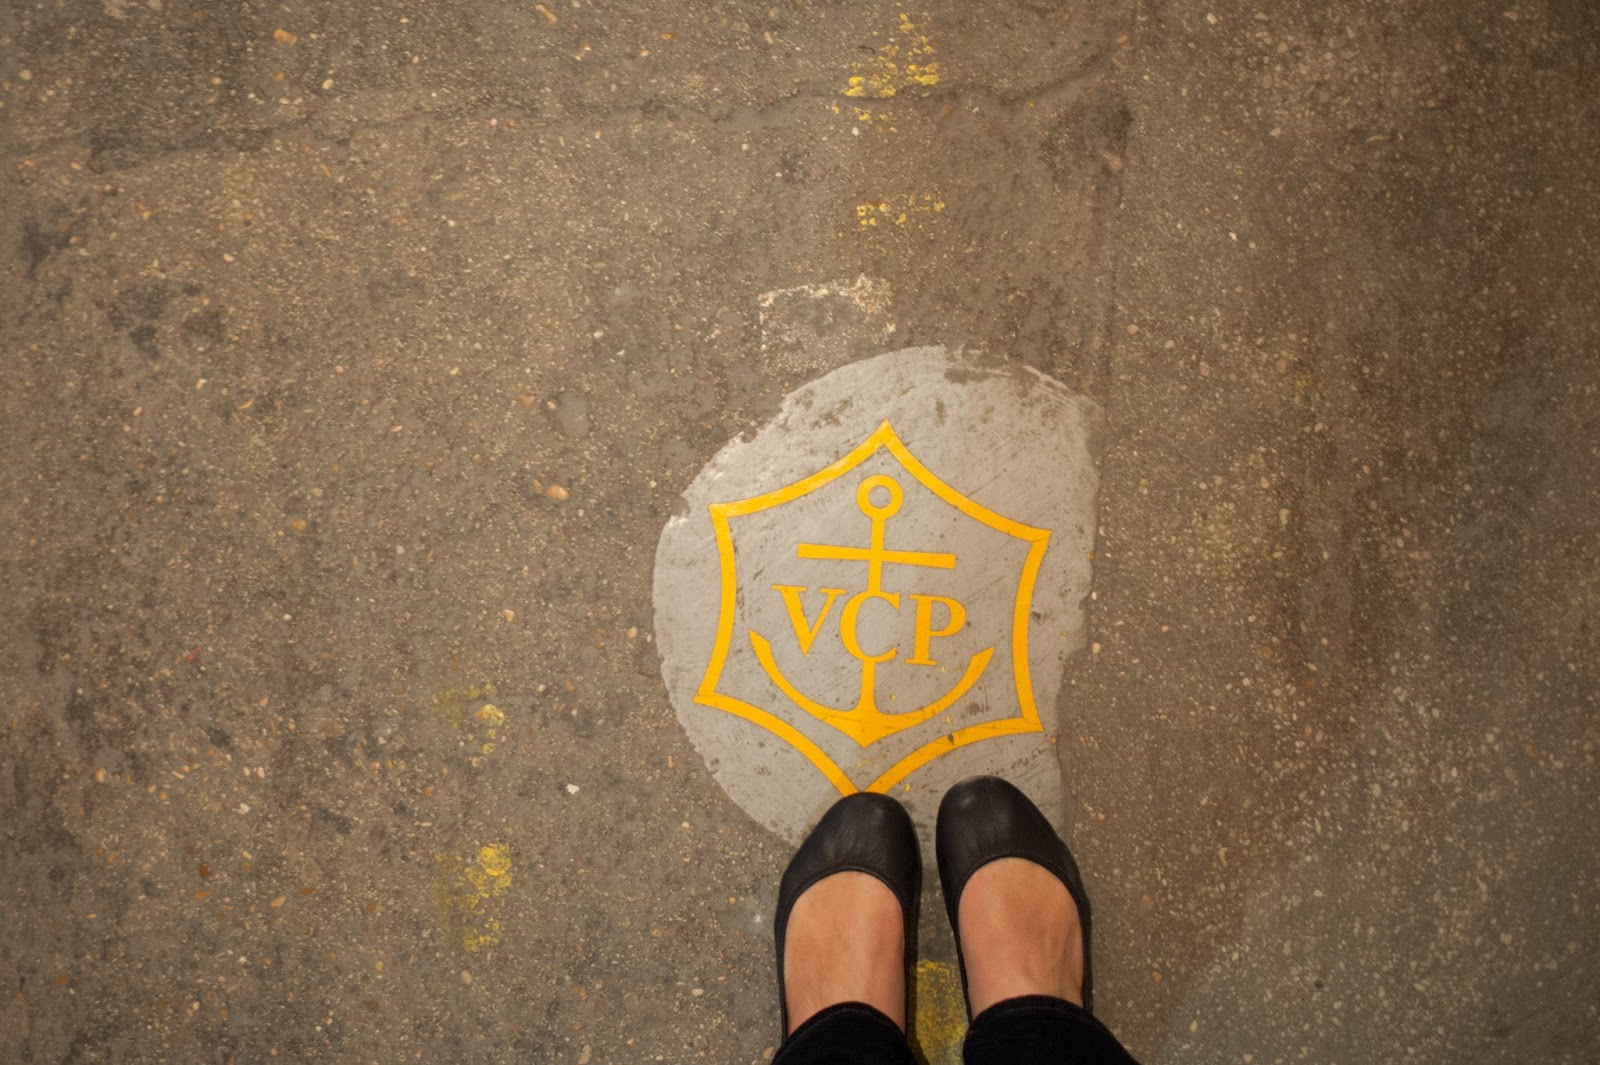 Crest embedded in the ground at Veuve Cliquot Champagne Outside Paris in Reims